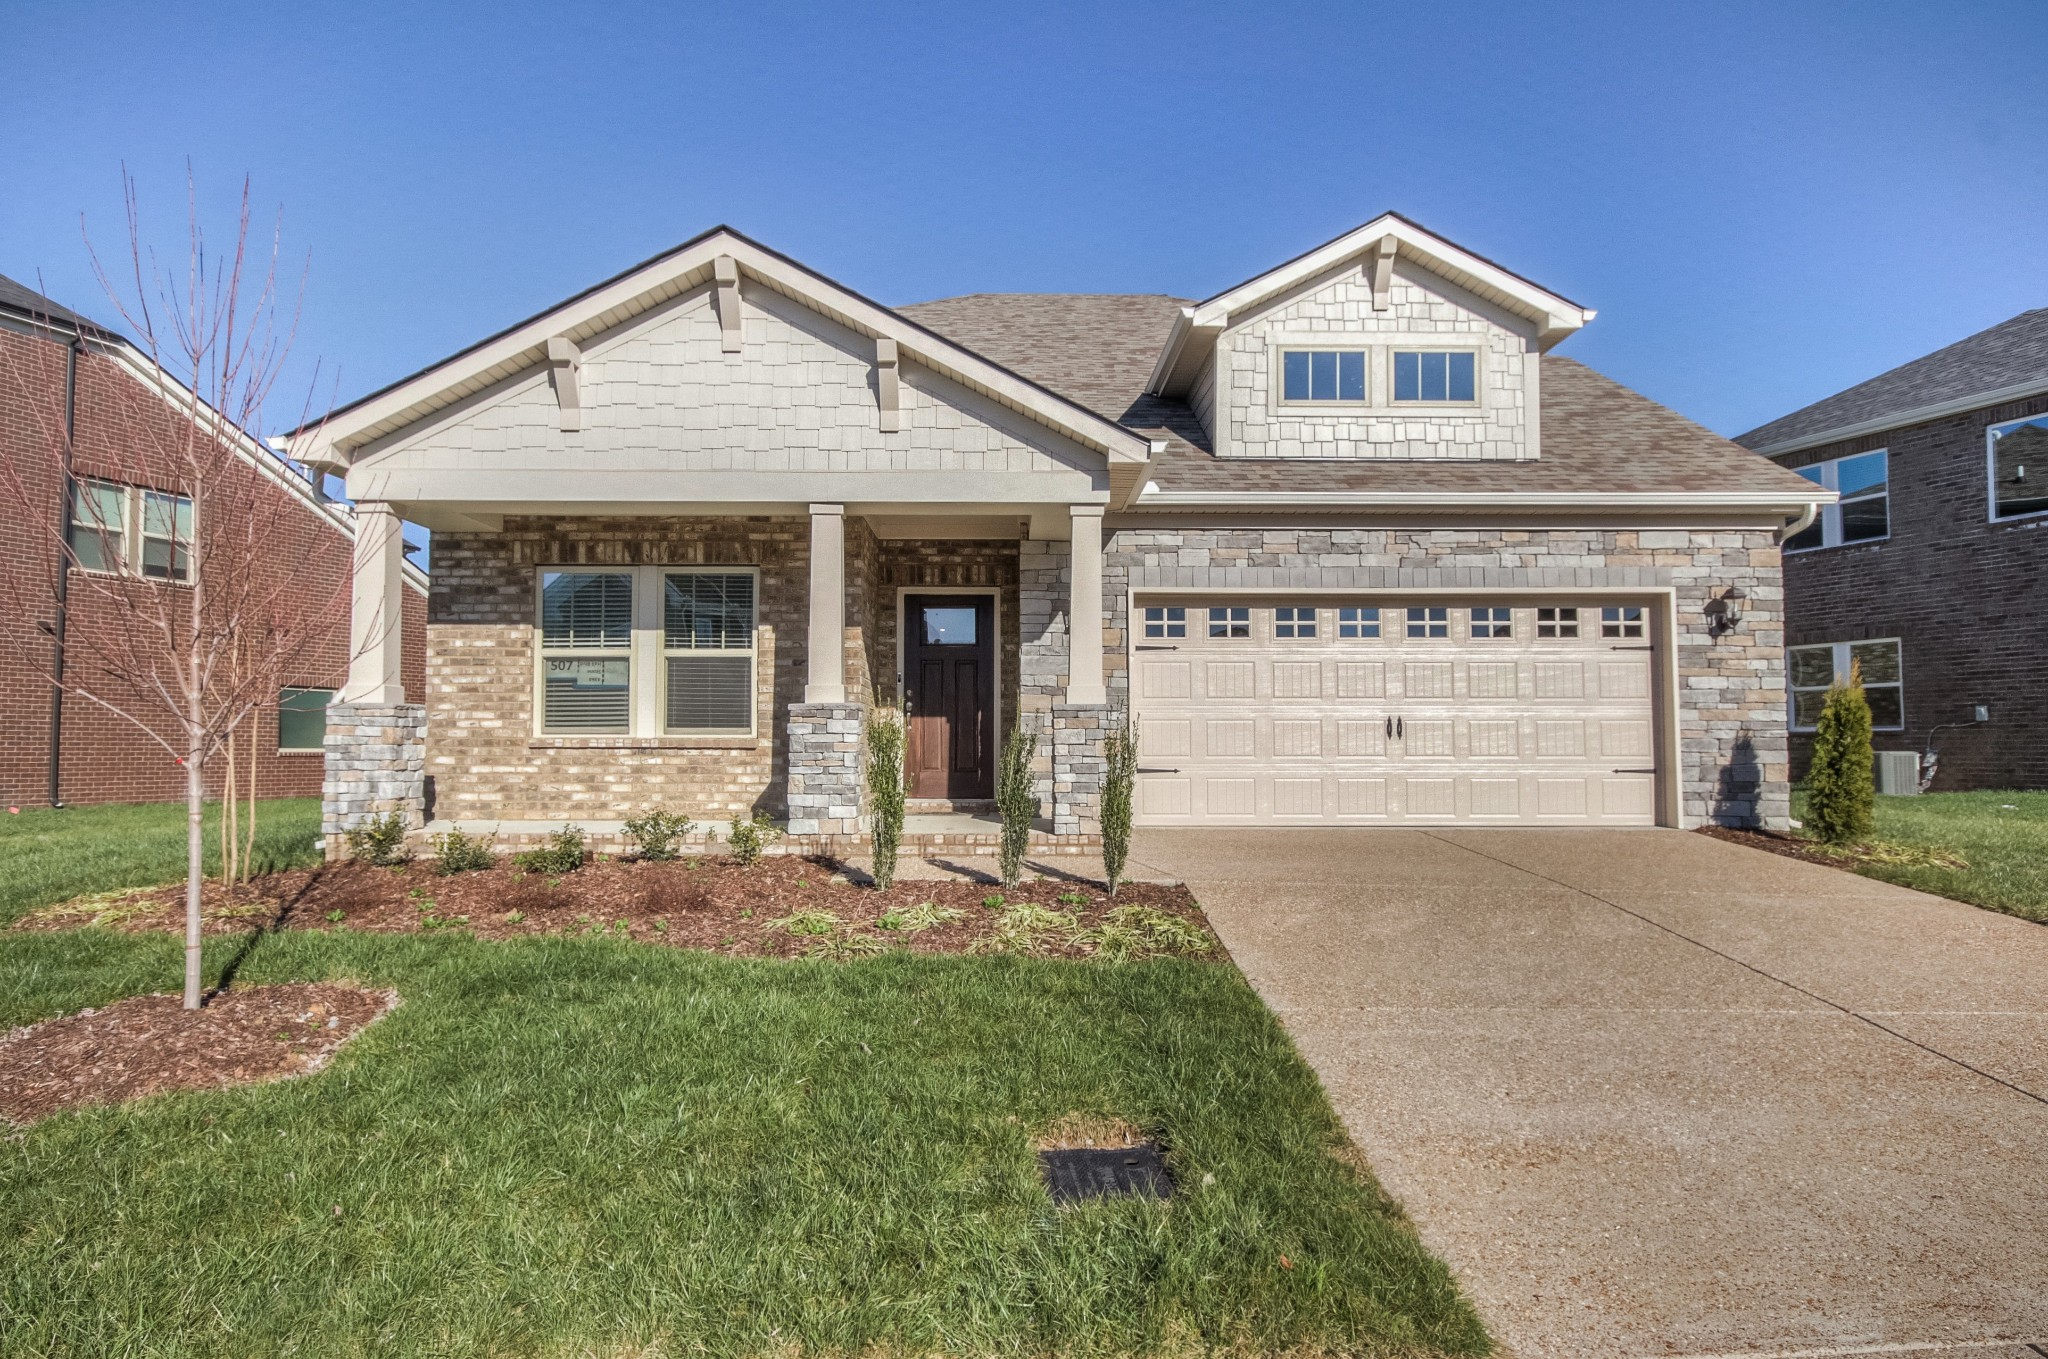 $399,990 - 4Br/3Ba -  for Sale in Highlands At Stone Hall, Hermitage